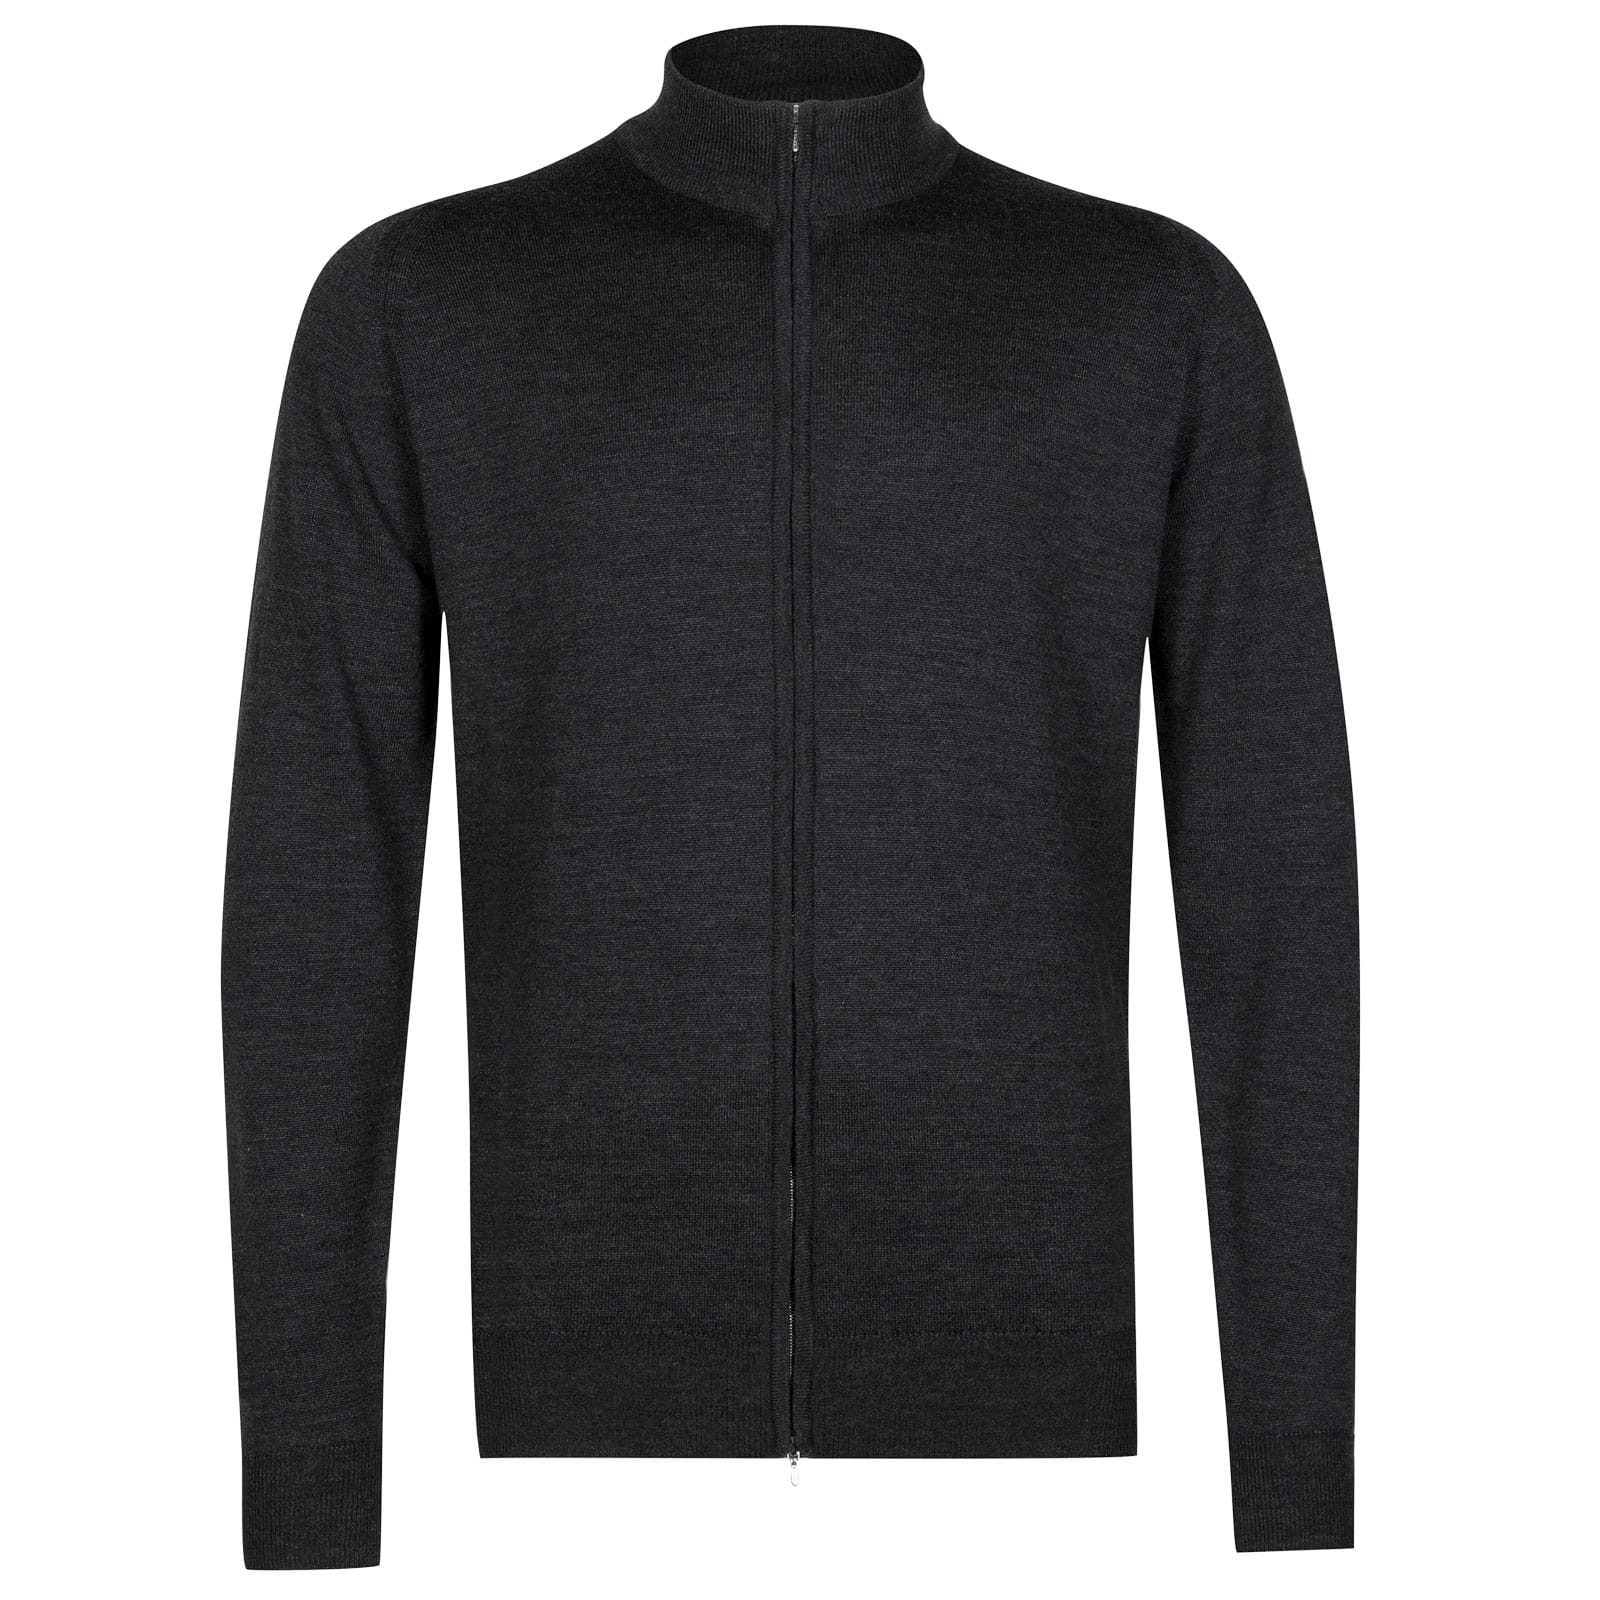 John Smedley claygate Merino Wool Jacket in Charcoal-M